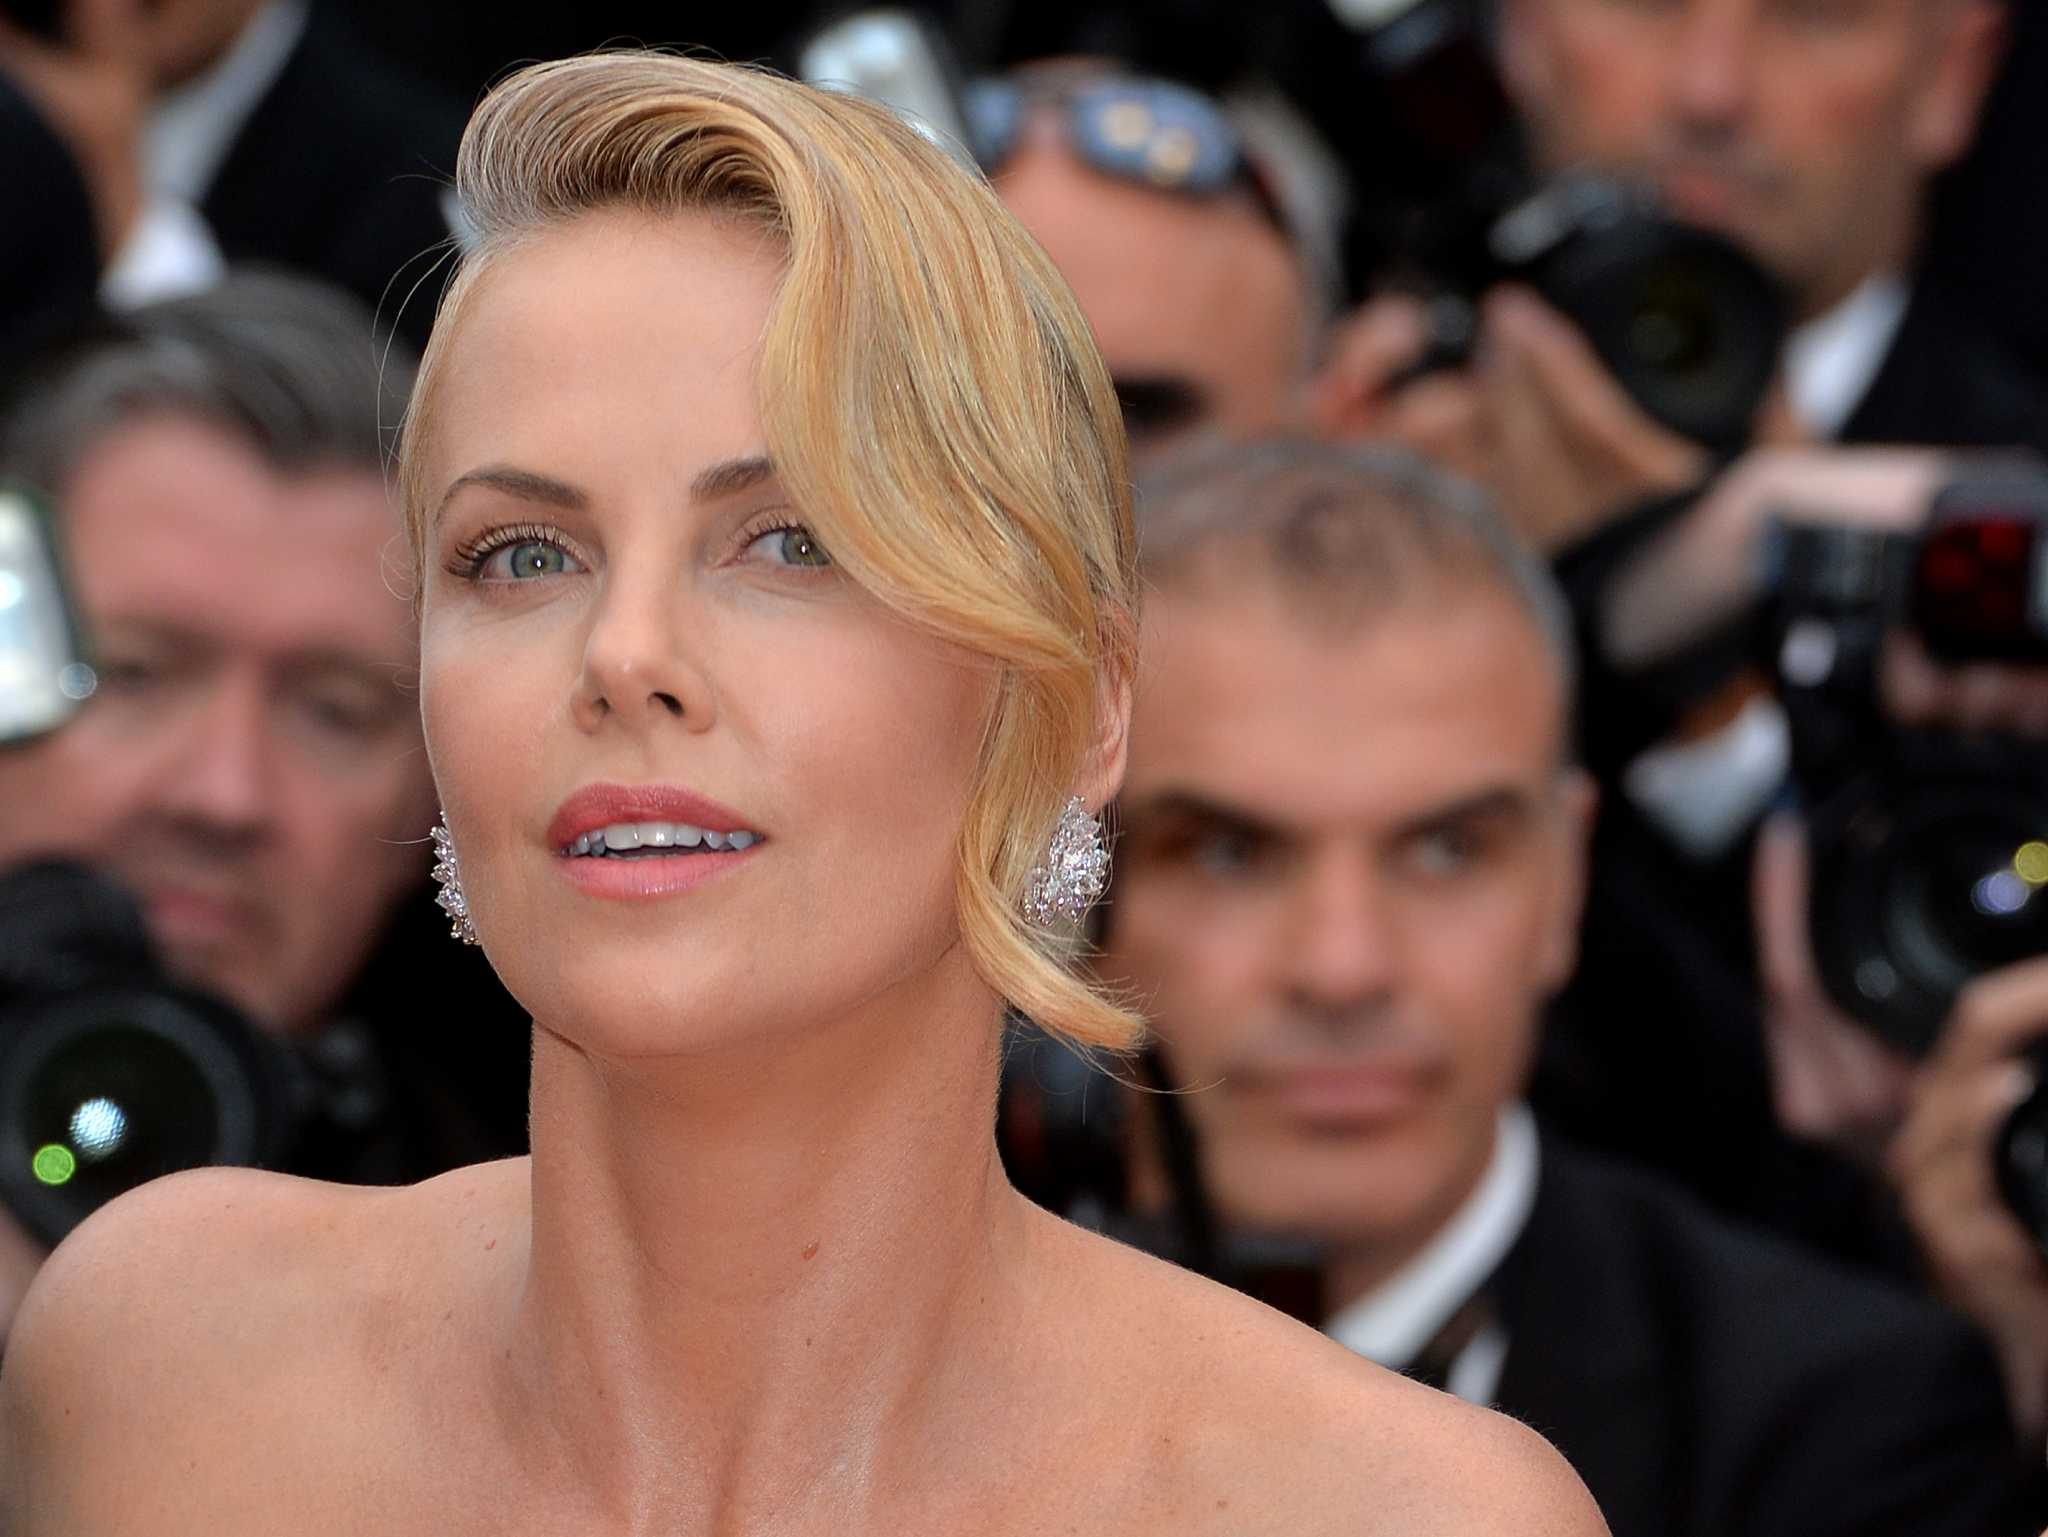 Andrea Osvart Hot Pics mad max: hot at box office, hotter on red carpet - seattlepi